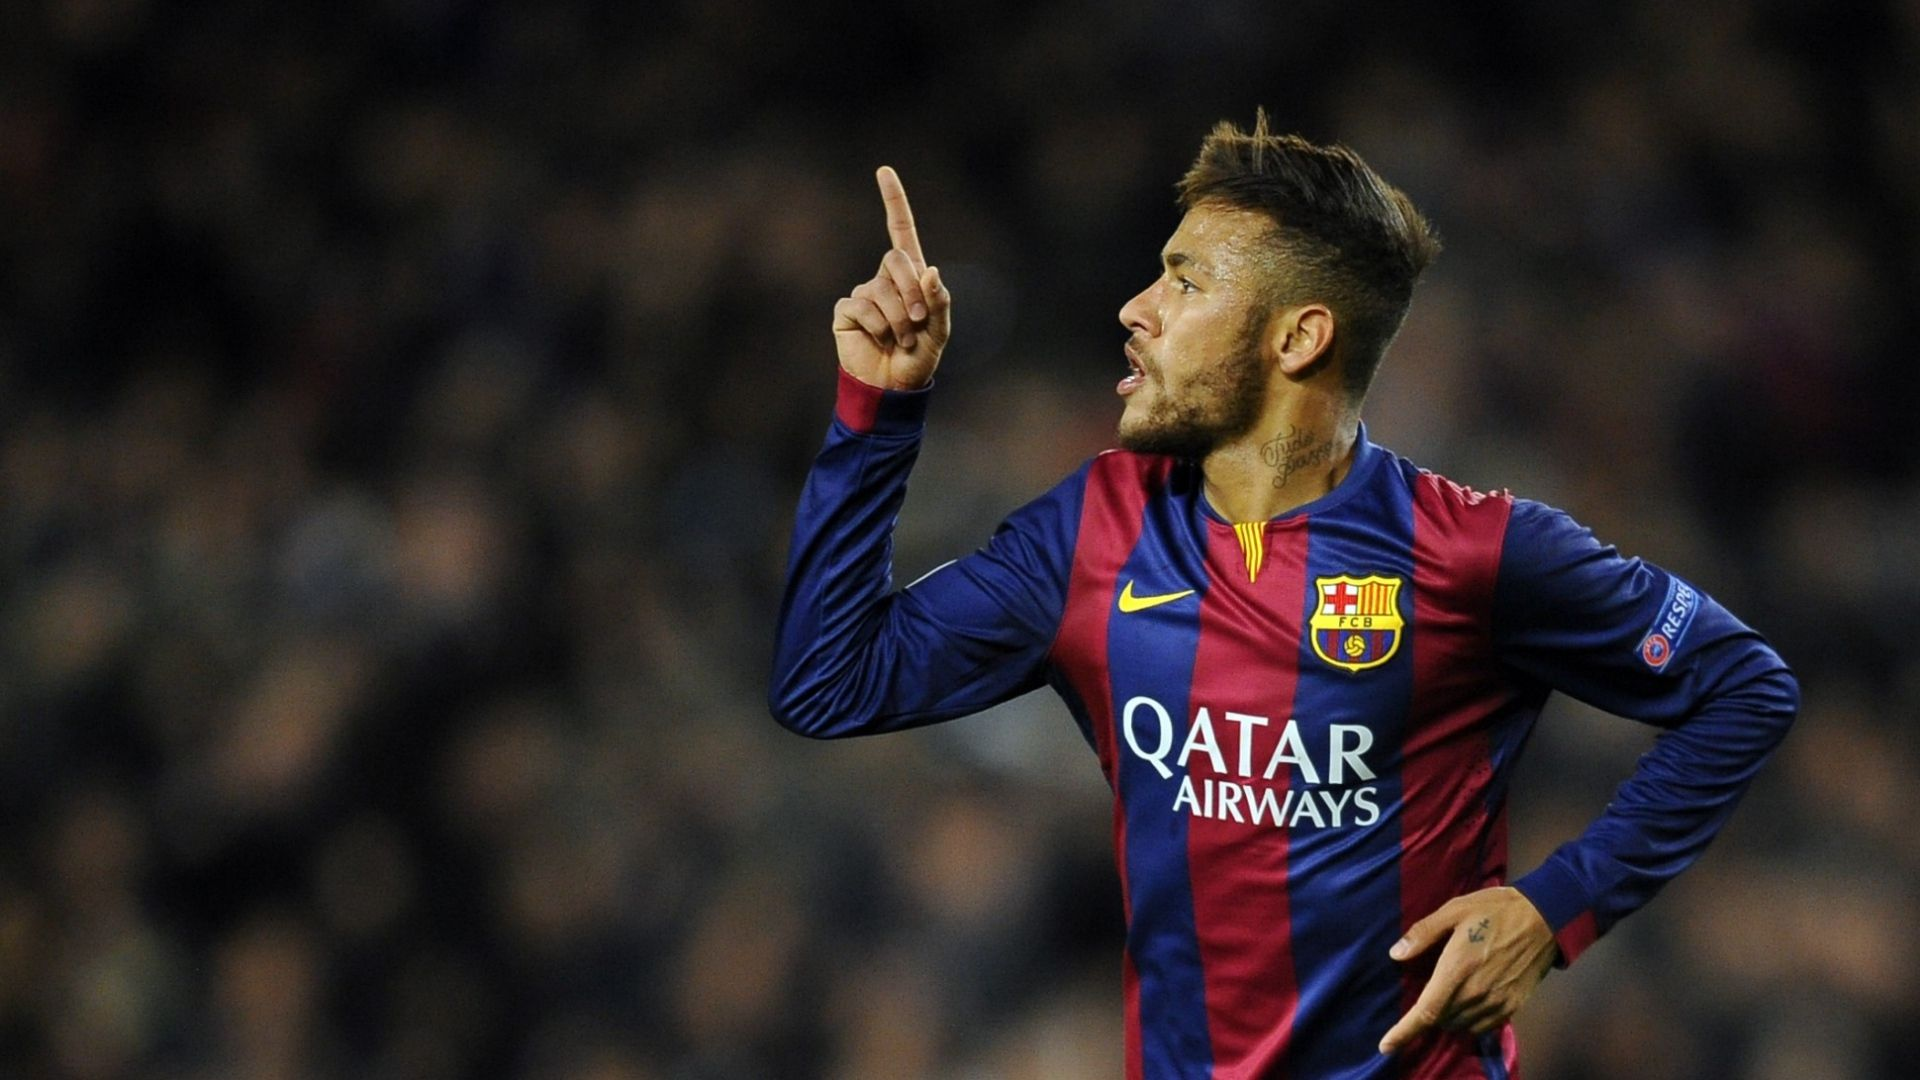 desktop neymar football soccer player hd free raise finger mobile bakground download pic